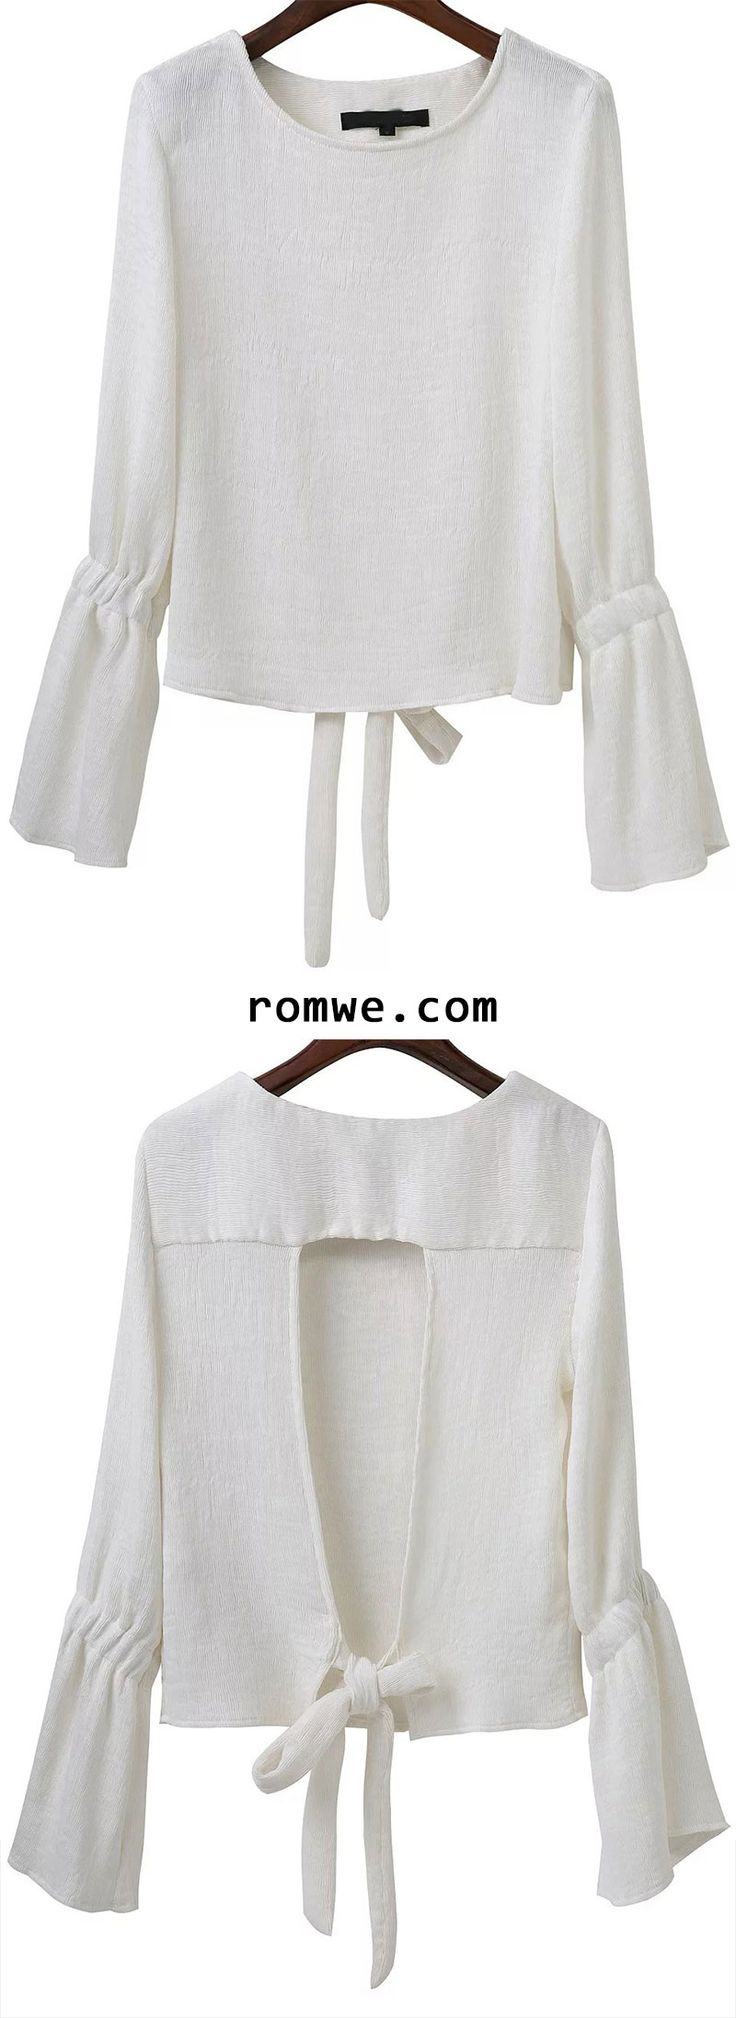 White Open Back Bell Sleeve Blouse With Tie